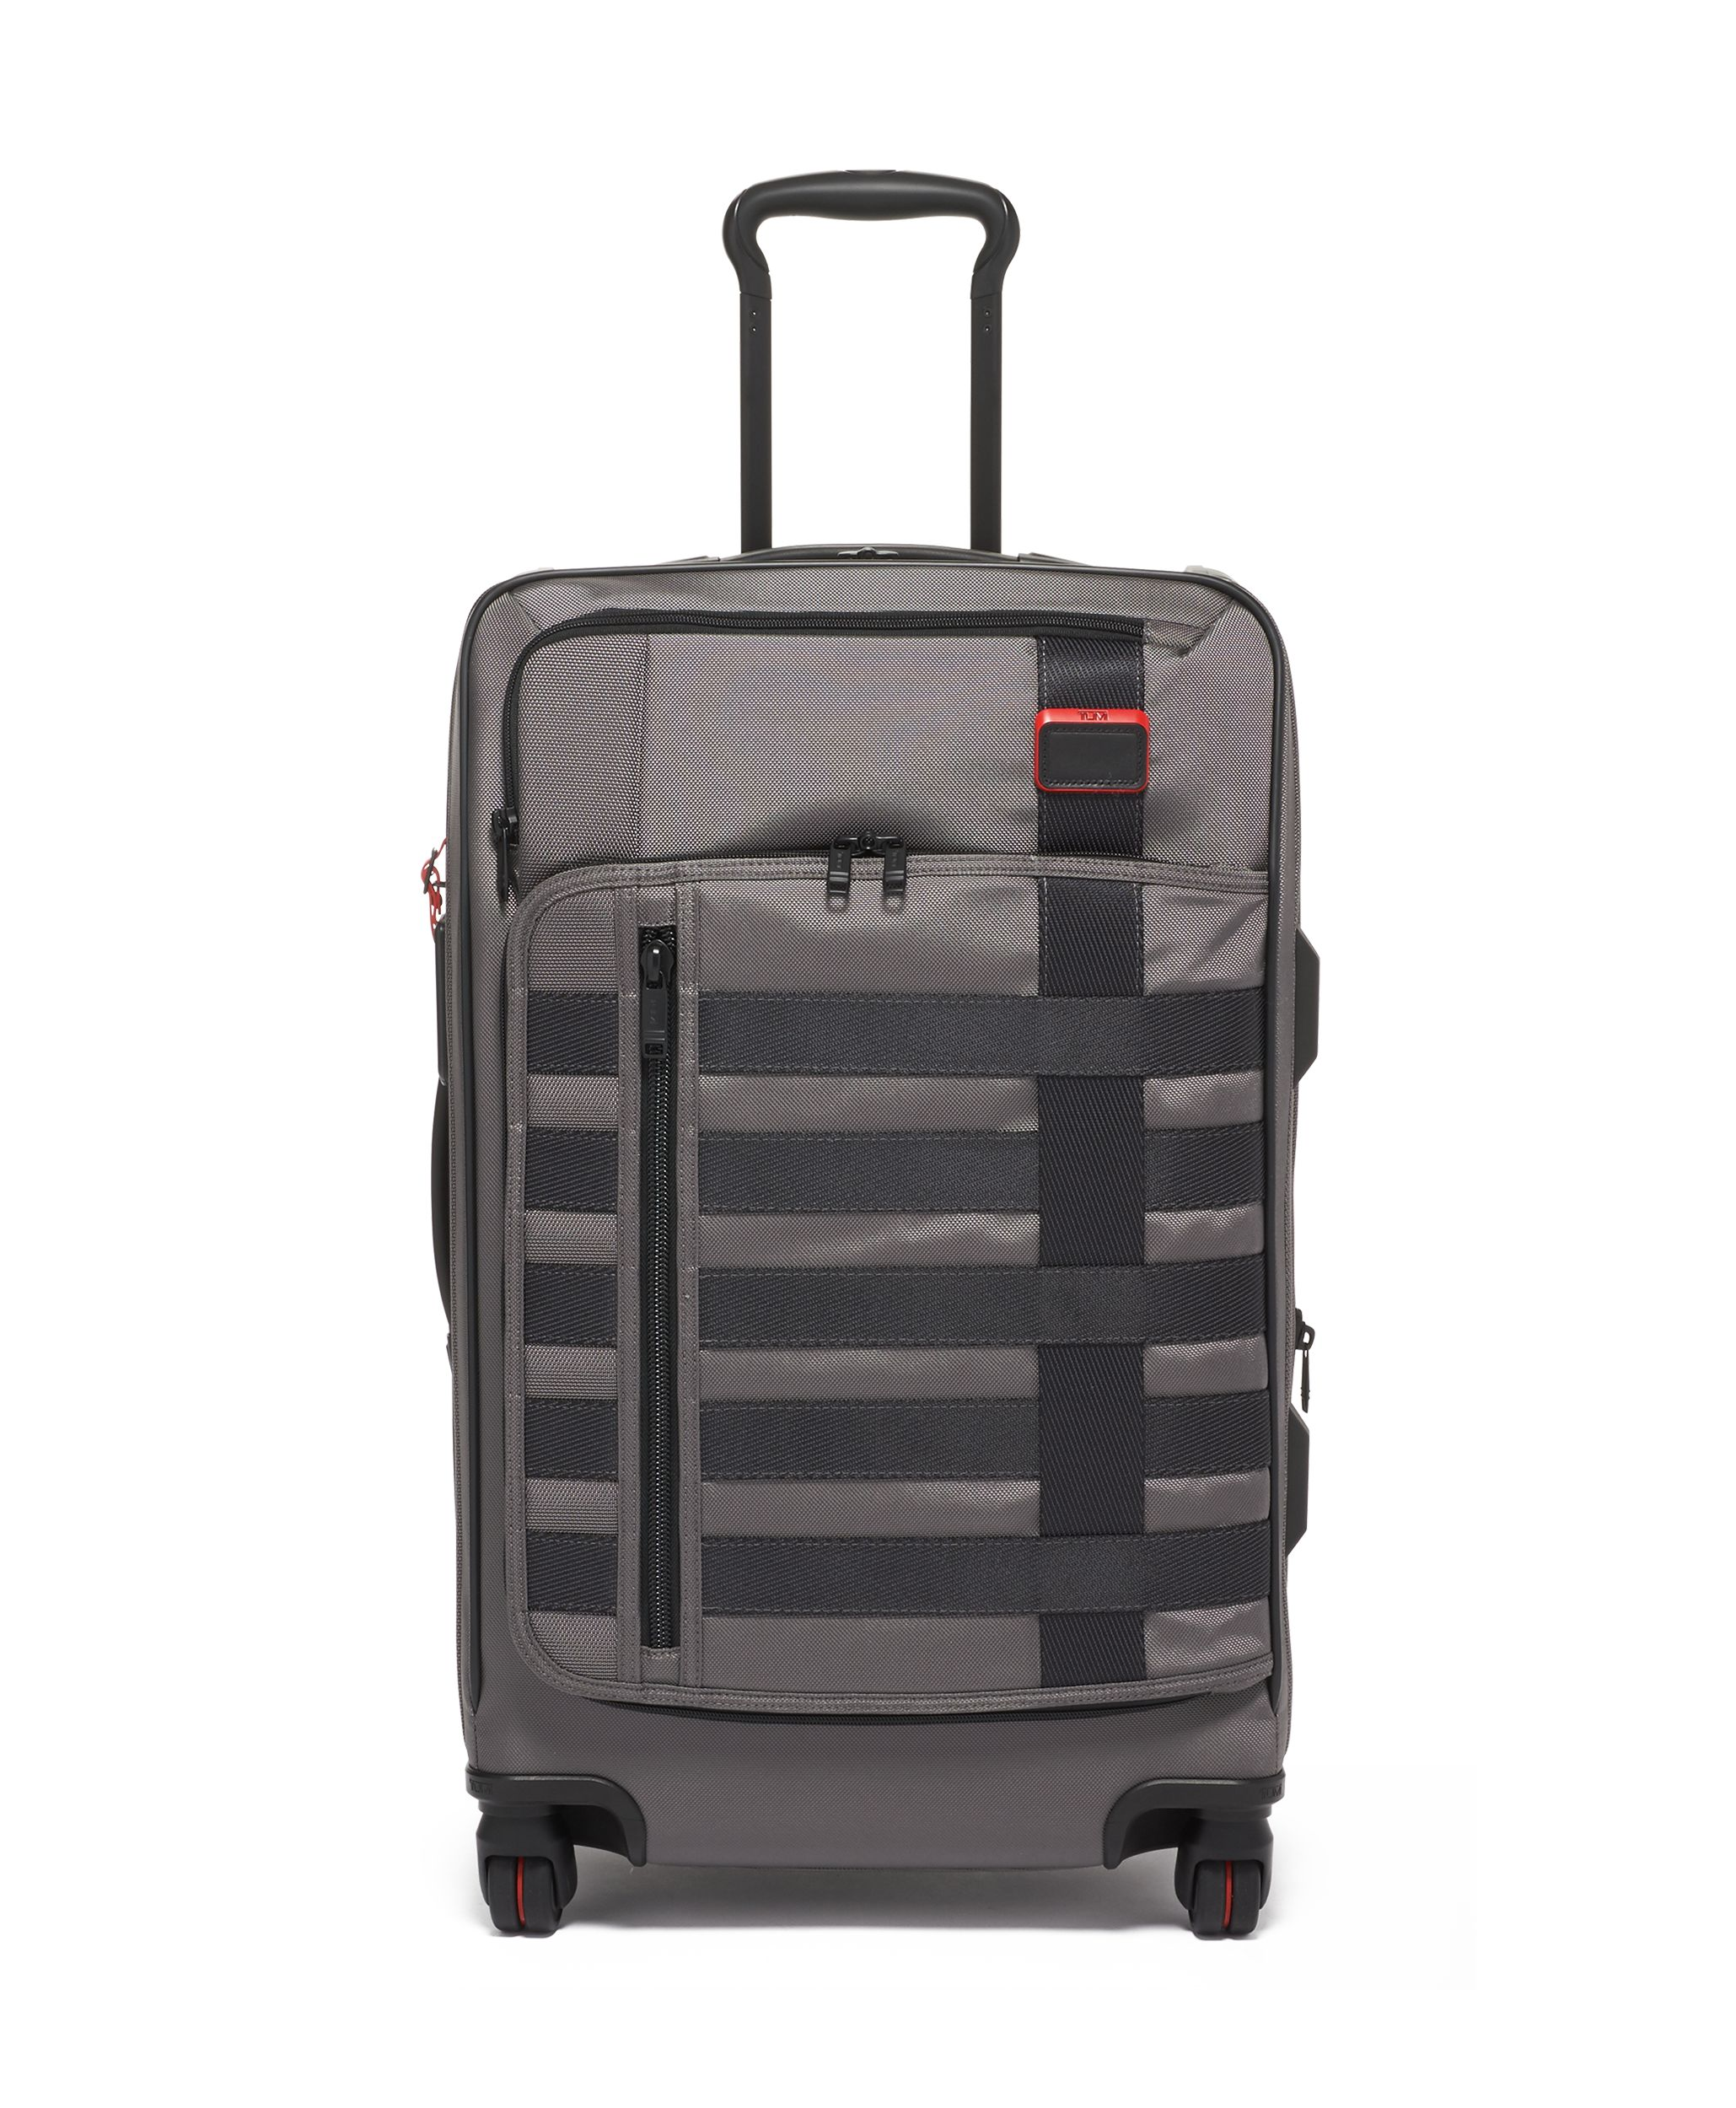 03fa42370d3b International Expandable Carry-On